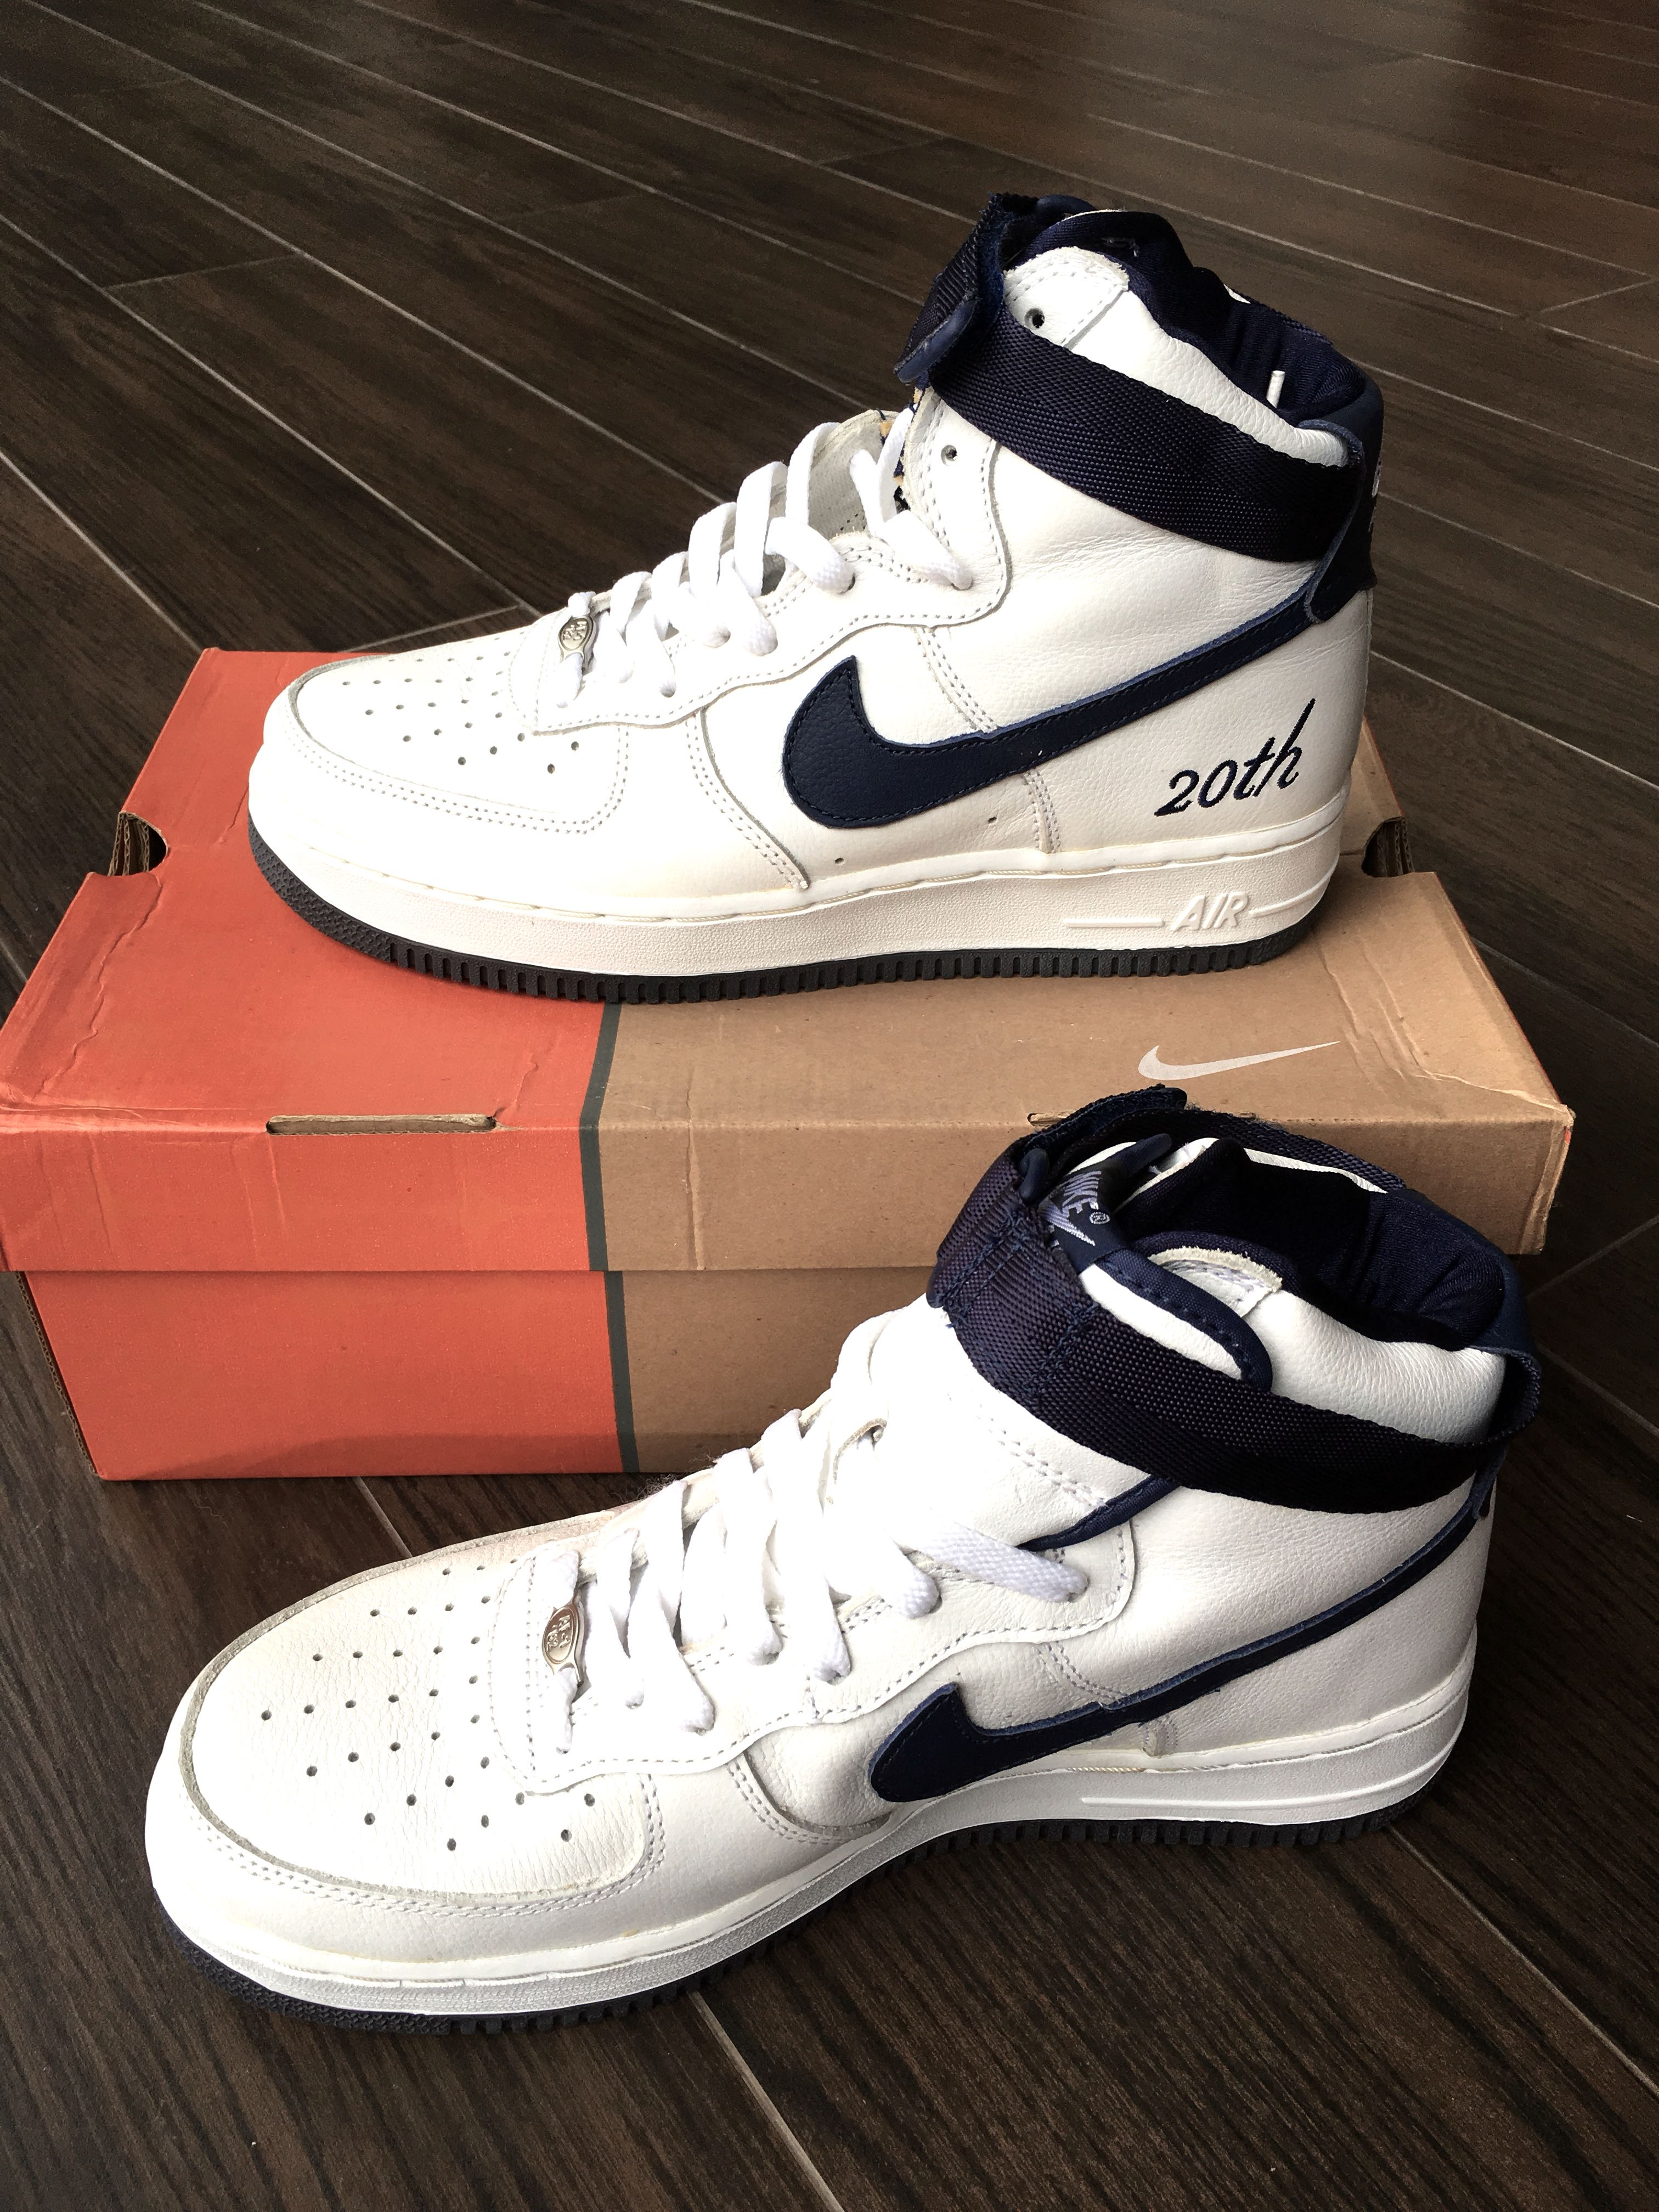 new arrivals 8e009 09229 US 9.5) Nike Air Force 1 high limited edition 20th anniversary ...